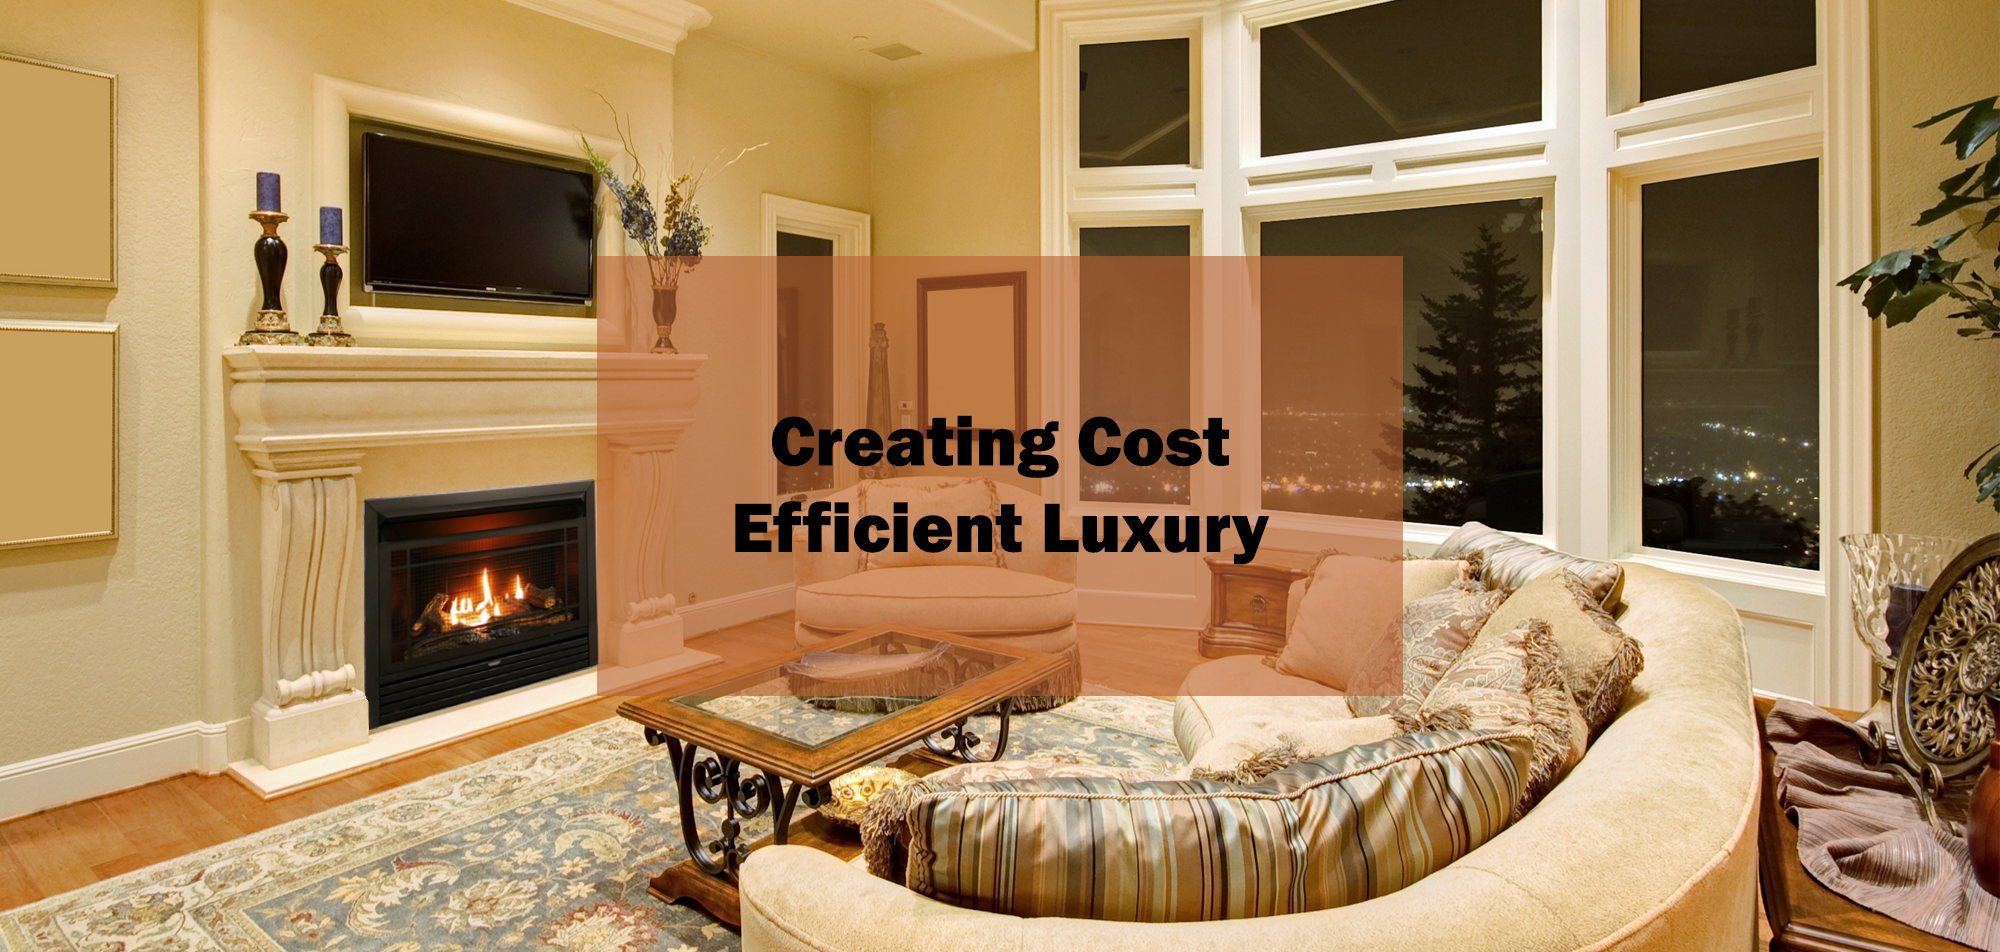 Cost Efficient Luxury